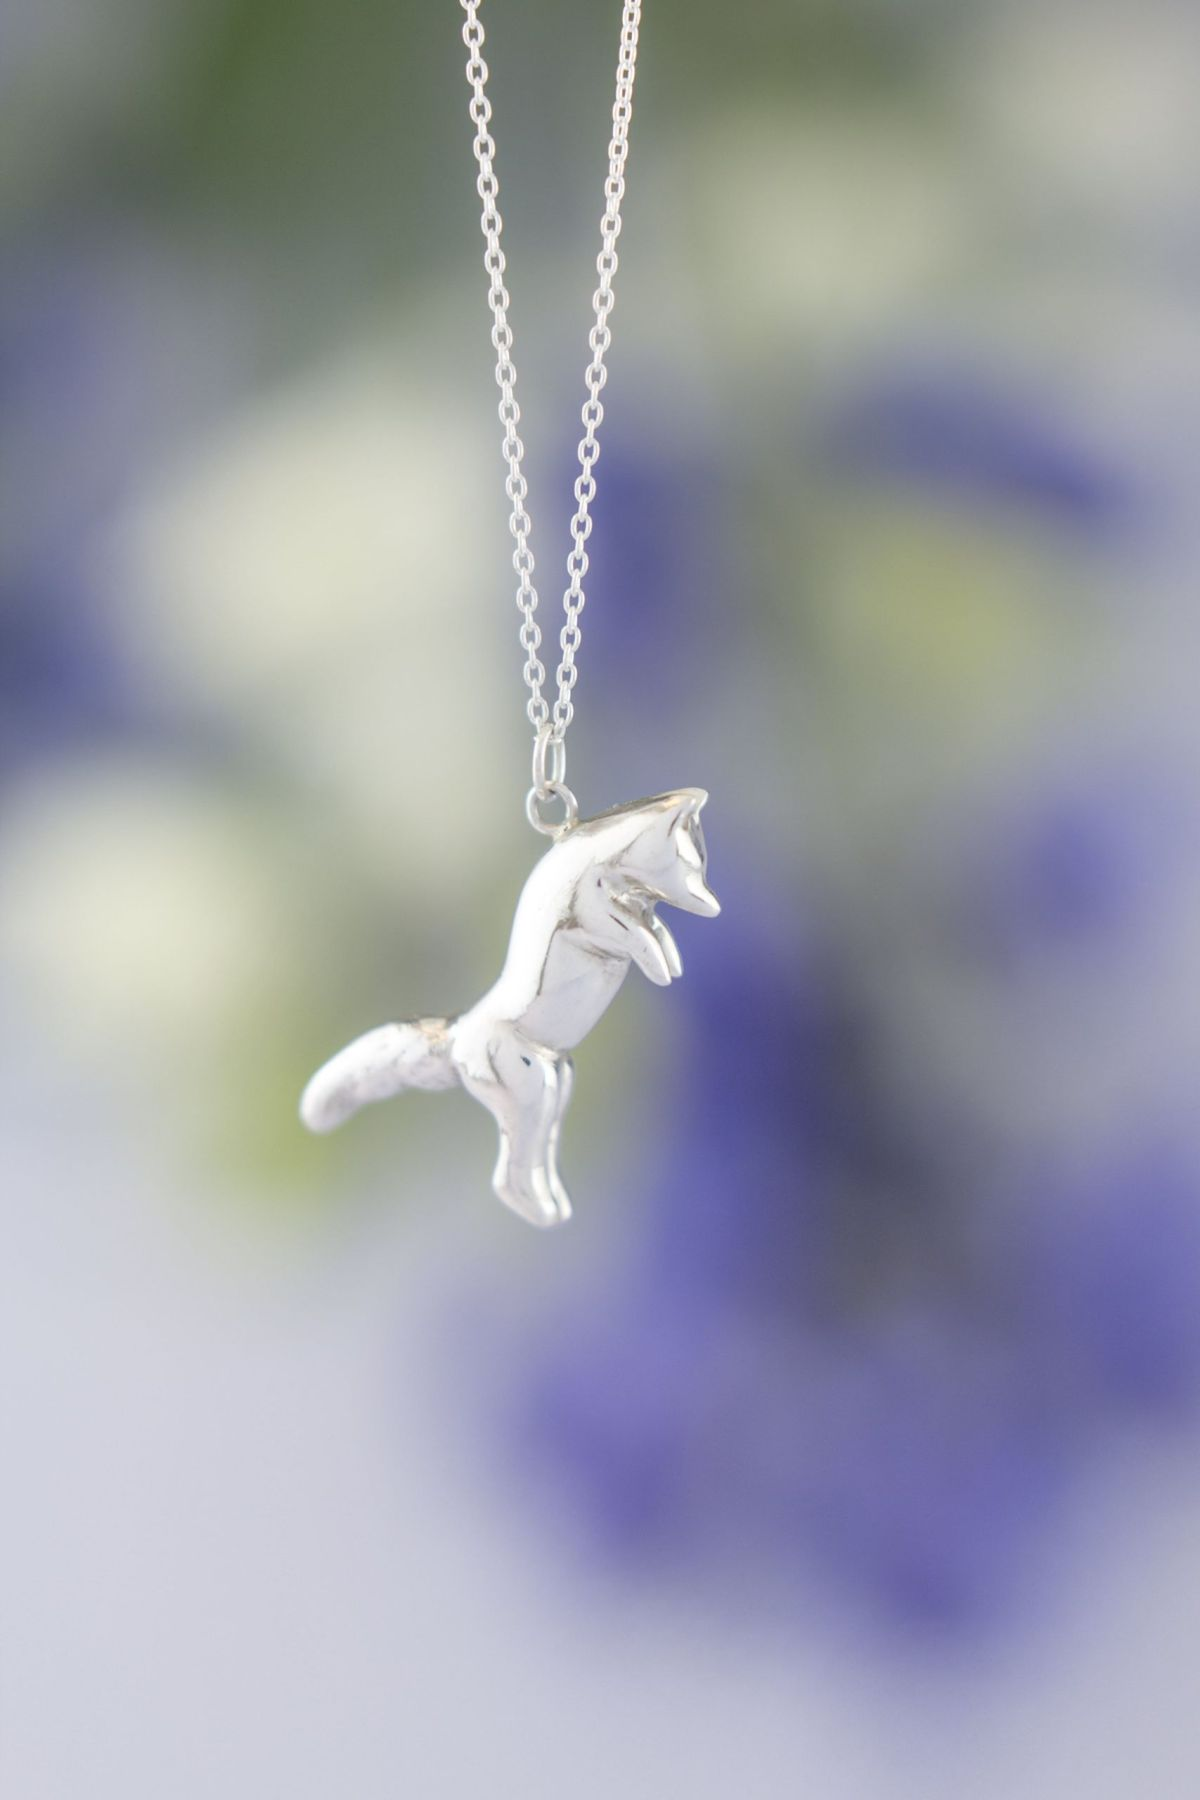 Pouncing fox necklace silver